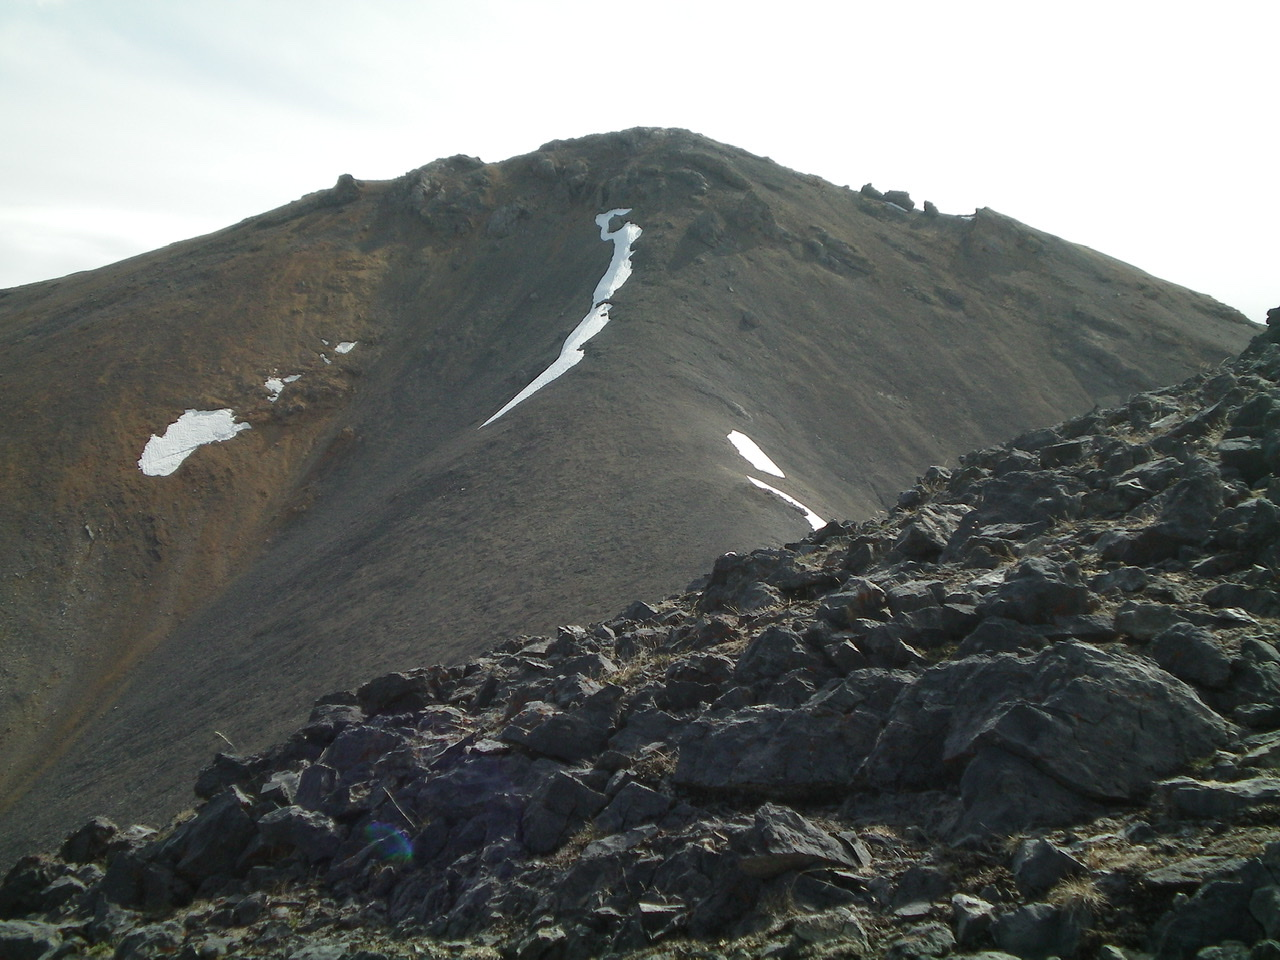 The rugged upper section of the West Ridge of Peak 10681 as viewed from lower on the West Ridge. That upper section goes at Class 2+/3, most assuredly NOT at Class 2. Livingston Douglas Photo